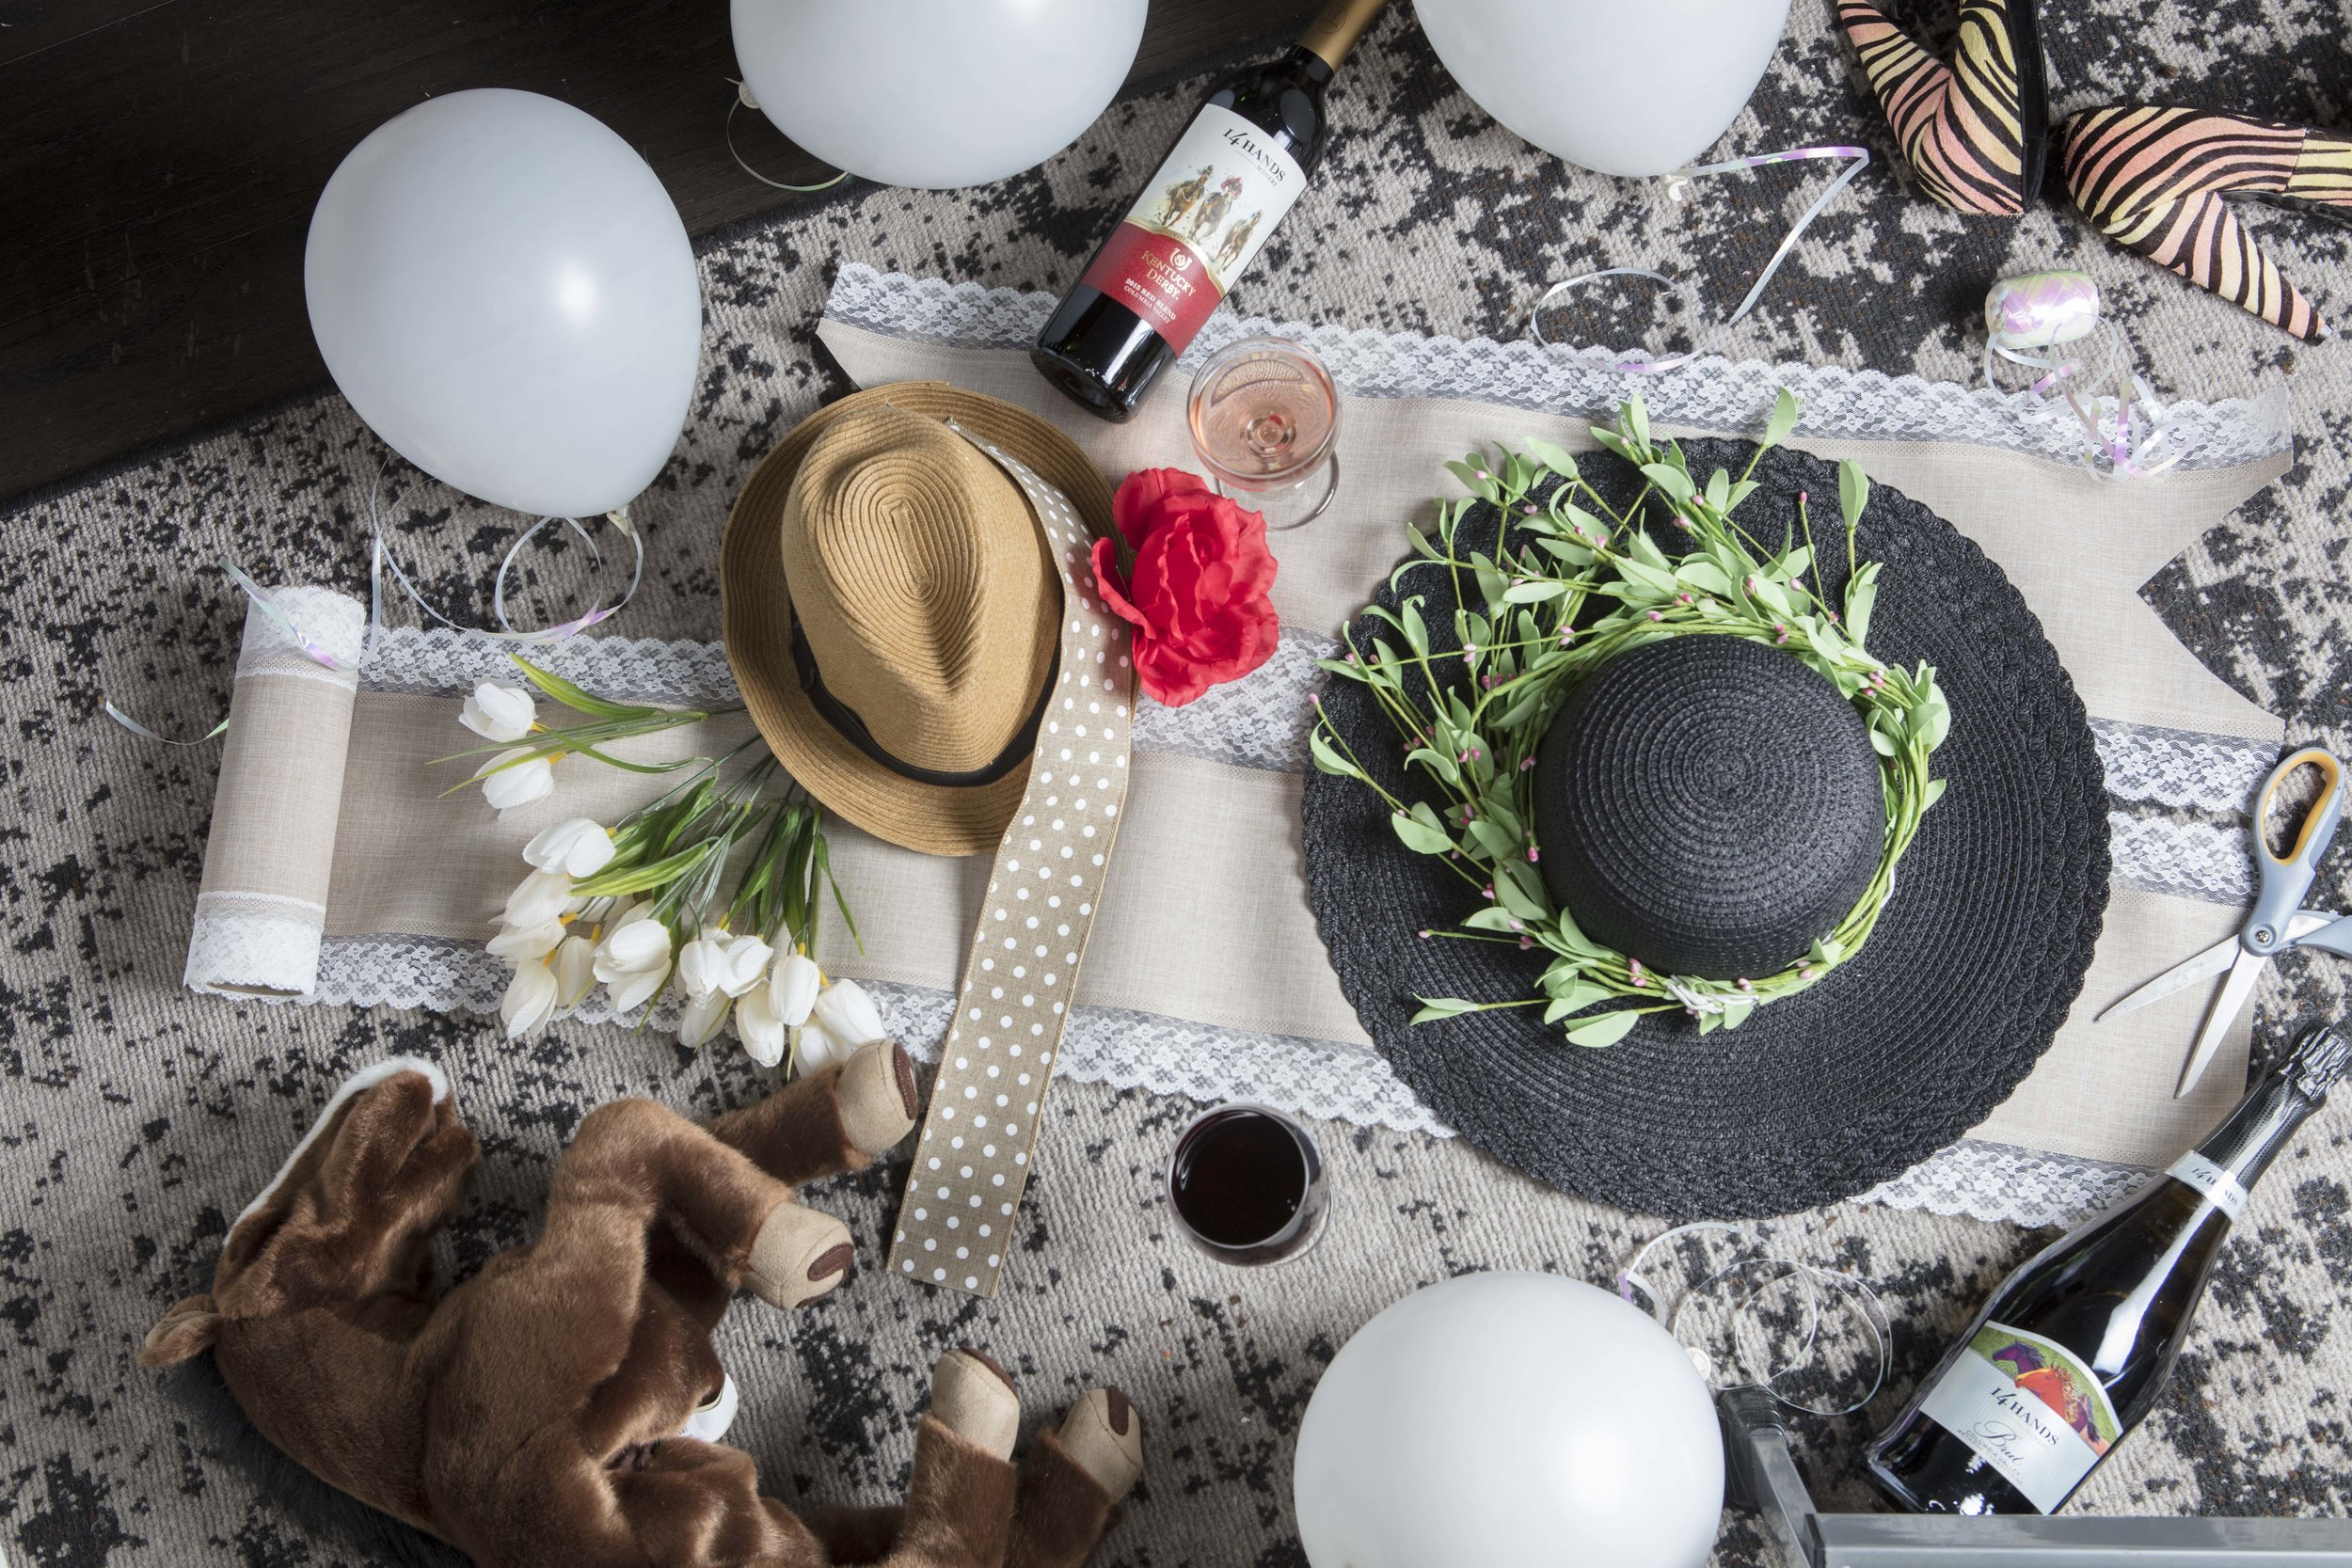 Create a DIY hat station so your guests can make a souvenir for your Kentucky Derby Party favors.